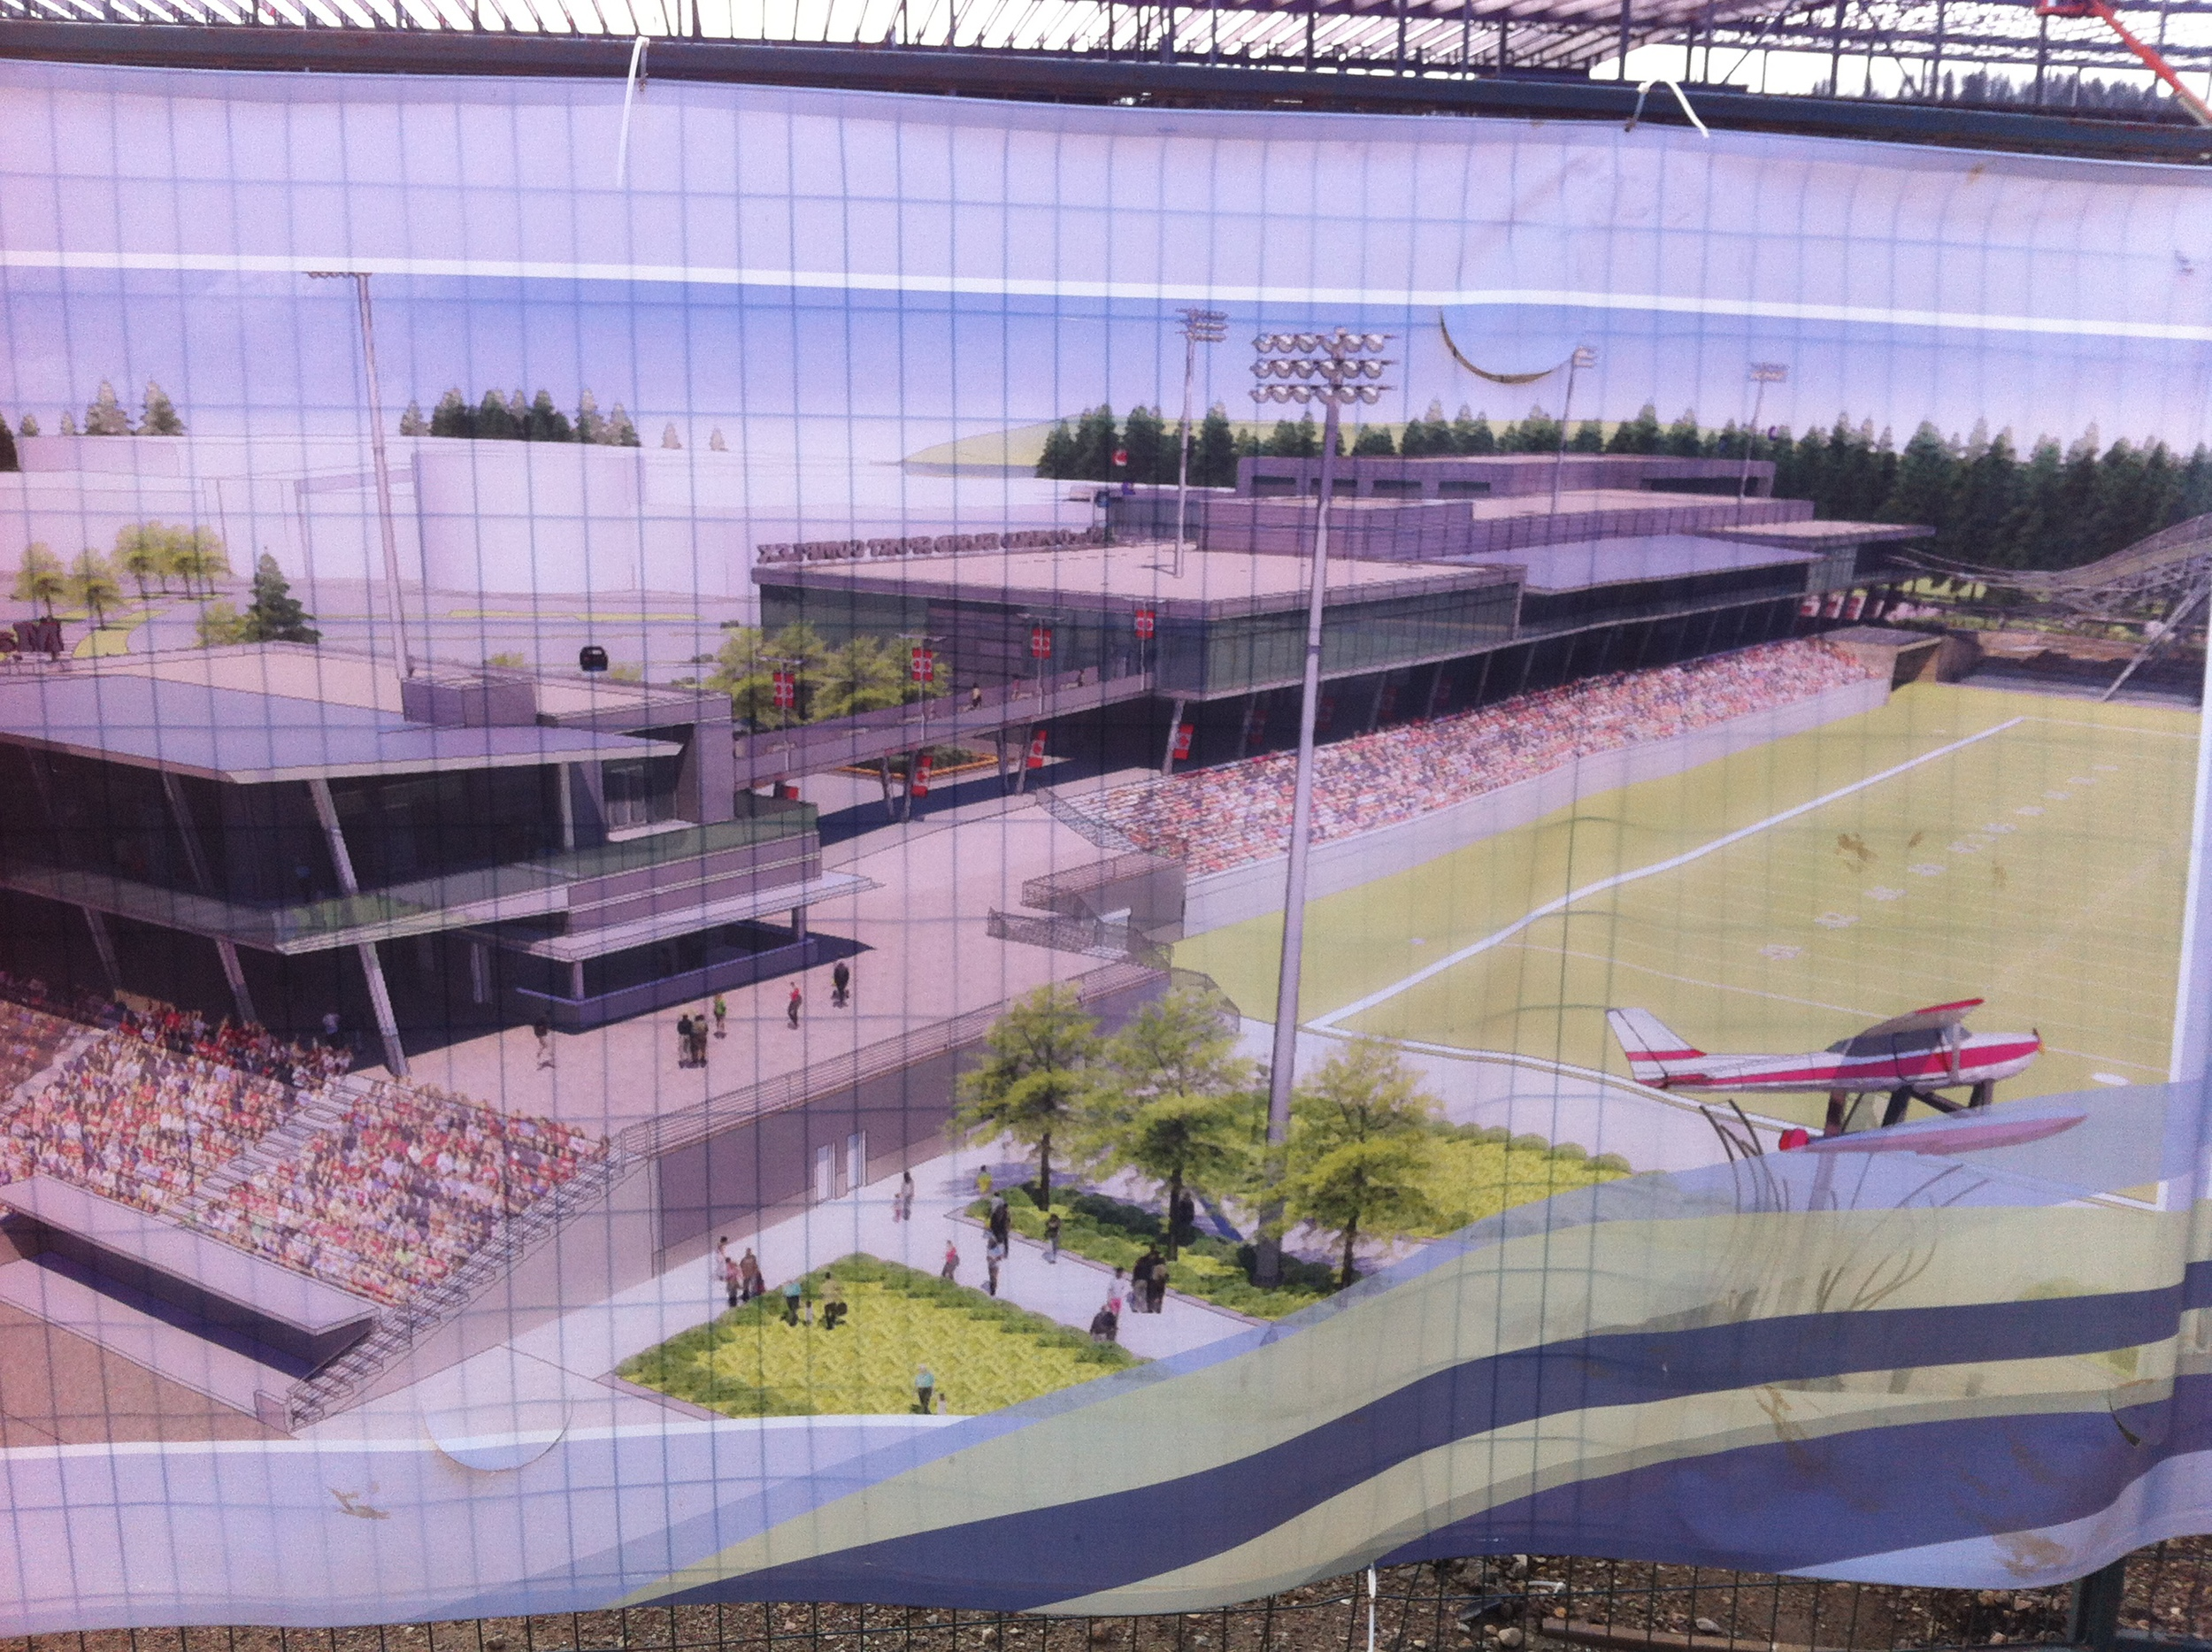 This is the SMS Stadium and field house that will have 5,000 permanent seats, with the ability to expand to 20,000 seats. It will host major sporting events, festivals, concerts and even grass root events. It will be completed by 2015 in time for the Edmonton Saskatchewan CFL pre-season game and the 2015 Western Canada Summer Games.